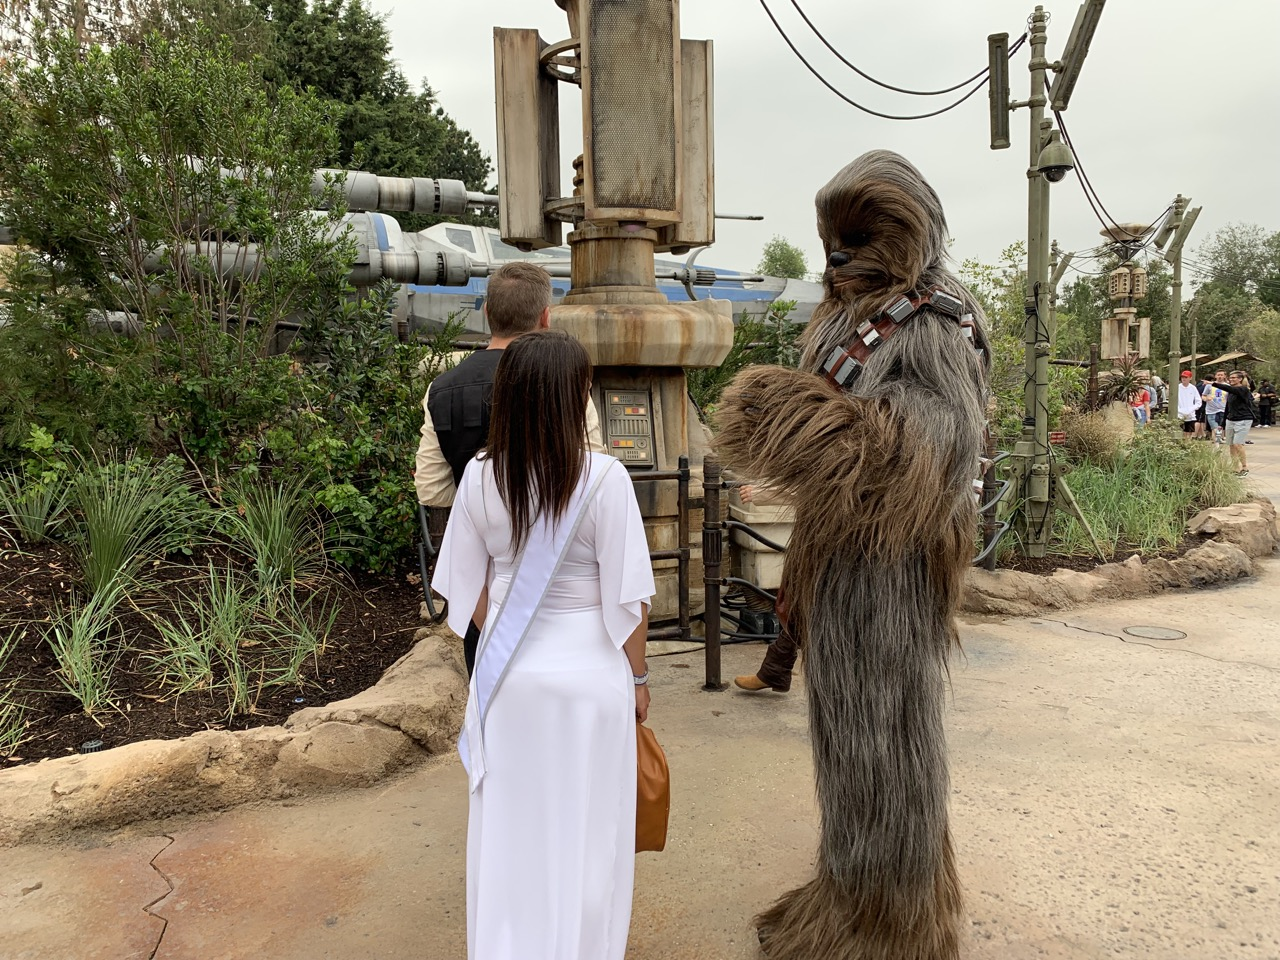 star wars land disneyland galaxys edge plan touring strategy 5.jpeg